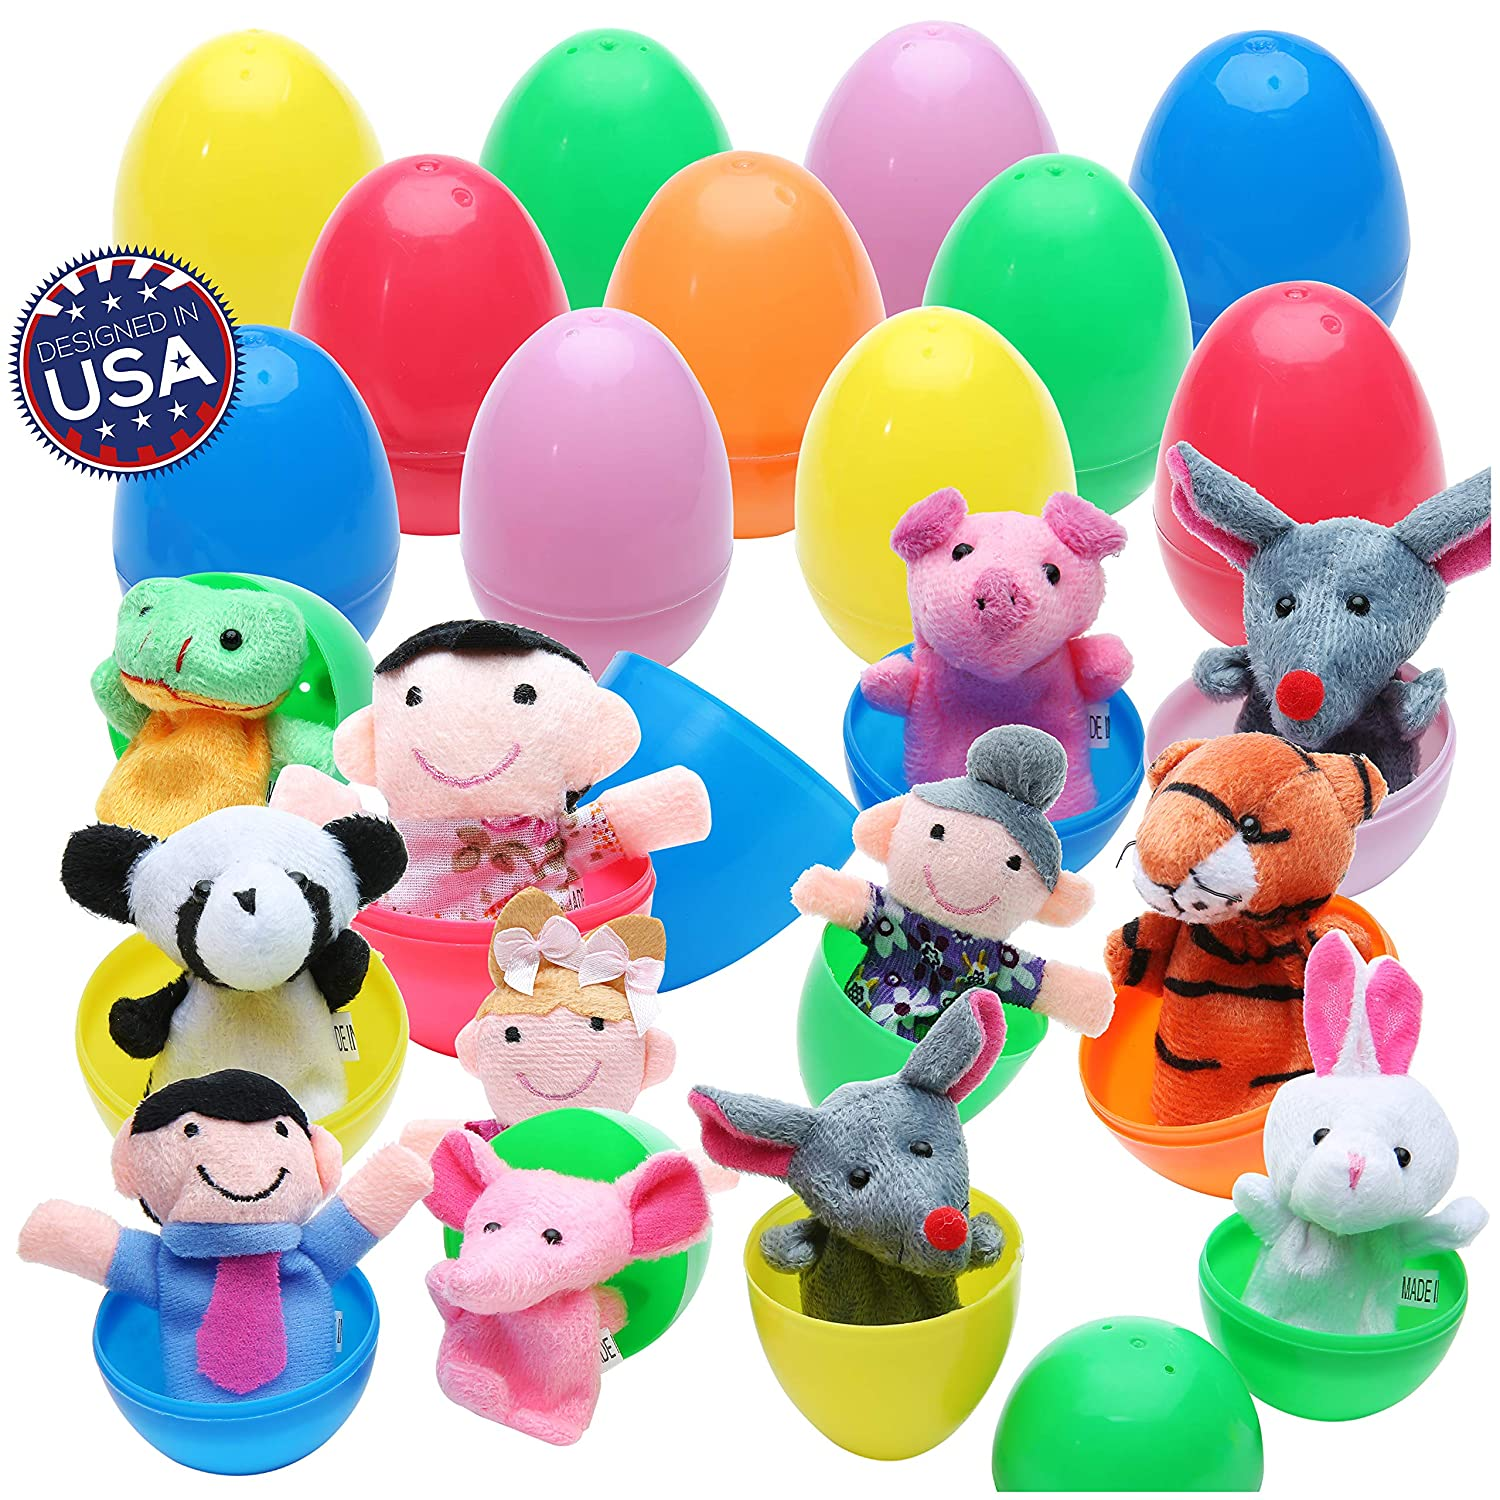 """20 Easter Eggs with Fun Finger Puppets - Assortment Surprise Plush Toys of Animal Finger Puppets in Plastic Eggs 2.4"""" x 1.6"""" (6cm x 4cm) Each Perfect for Easter Egg Hunt, Birthdays, Kids Gifts and Party Favors"""